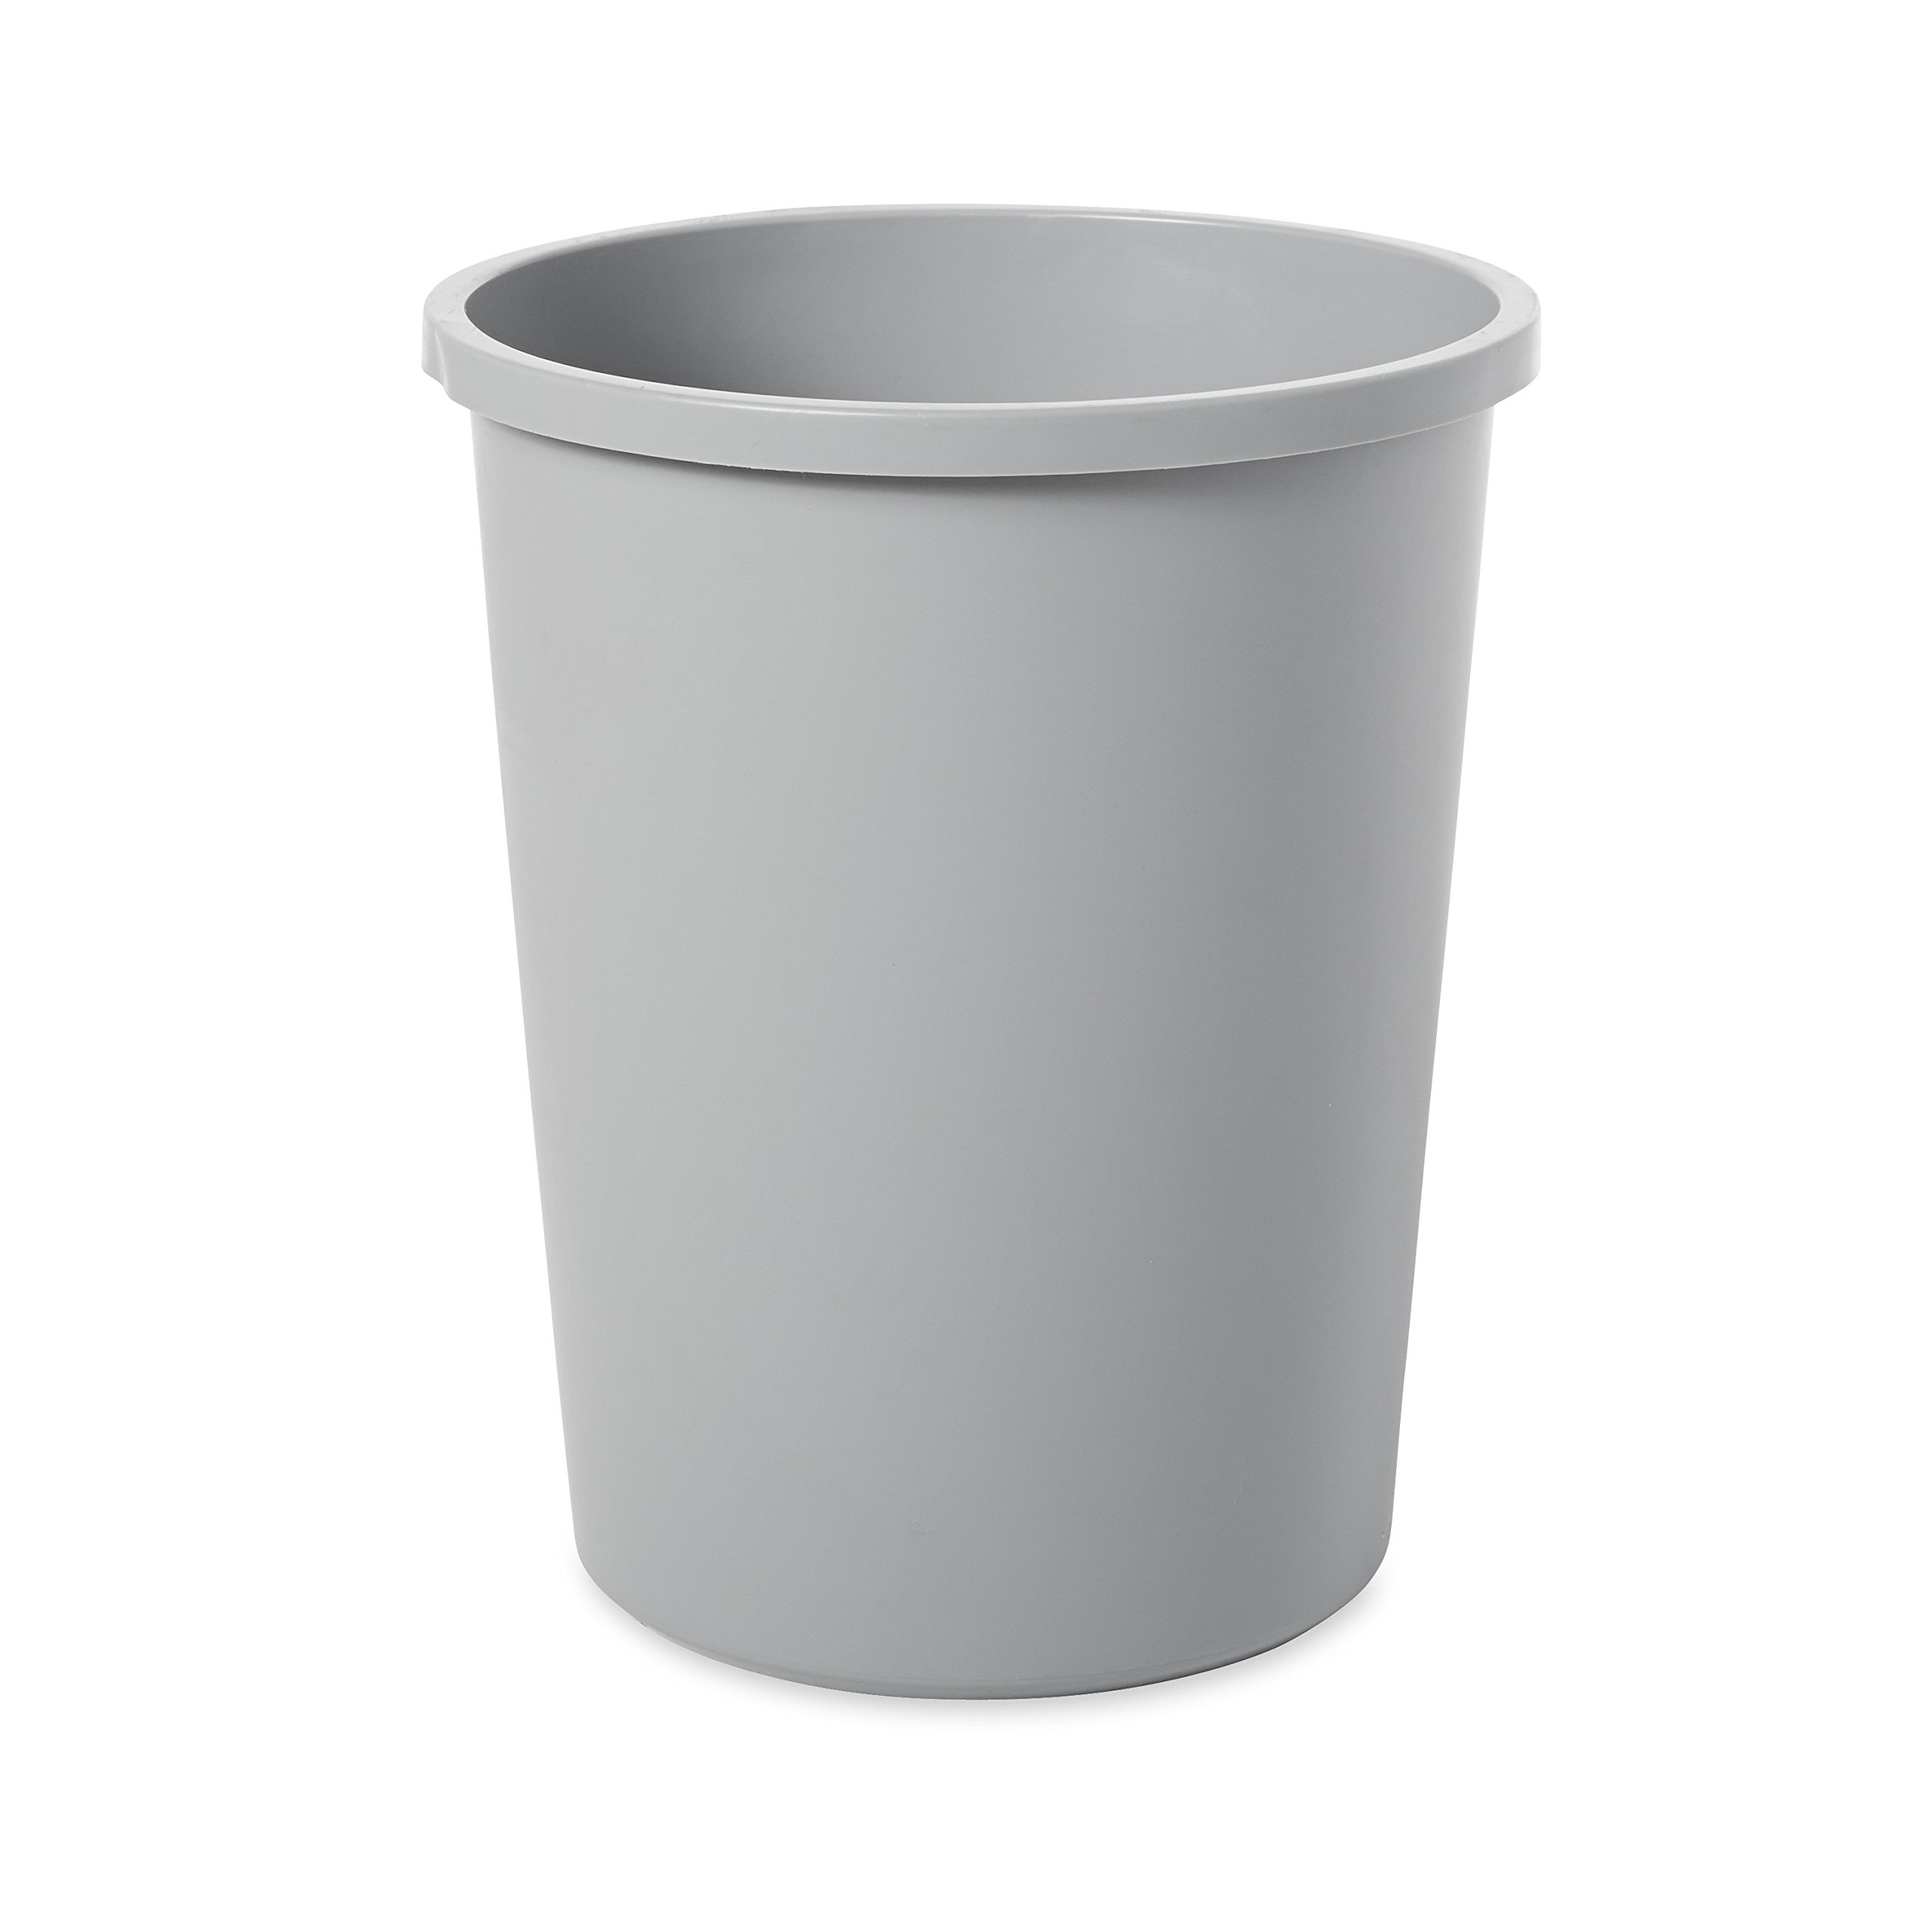 Rubbermaid Commercial Untouchable Trash Can, 11 Gallon, Gray, FG294700GRAY by Rubbermaid Commercial Products